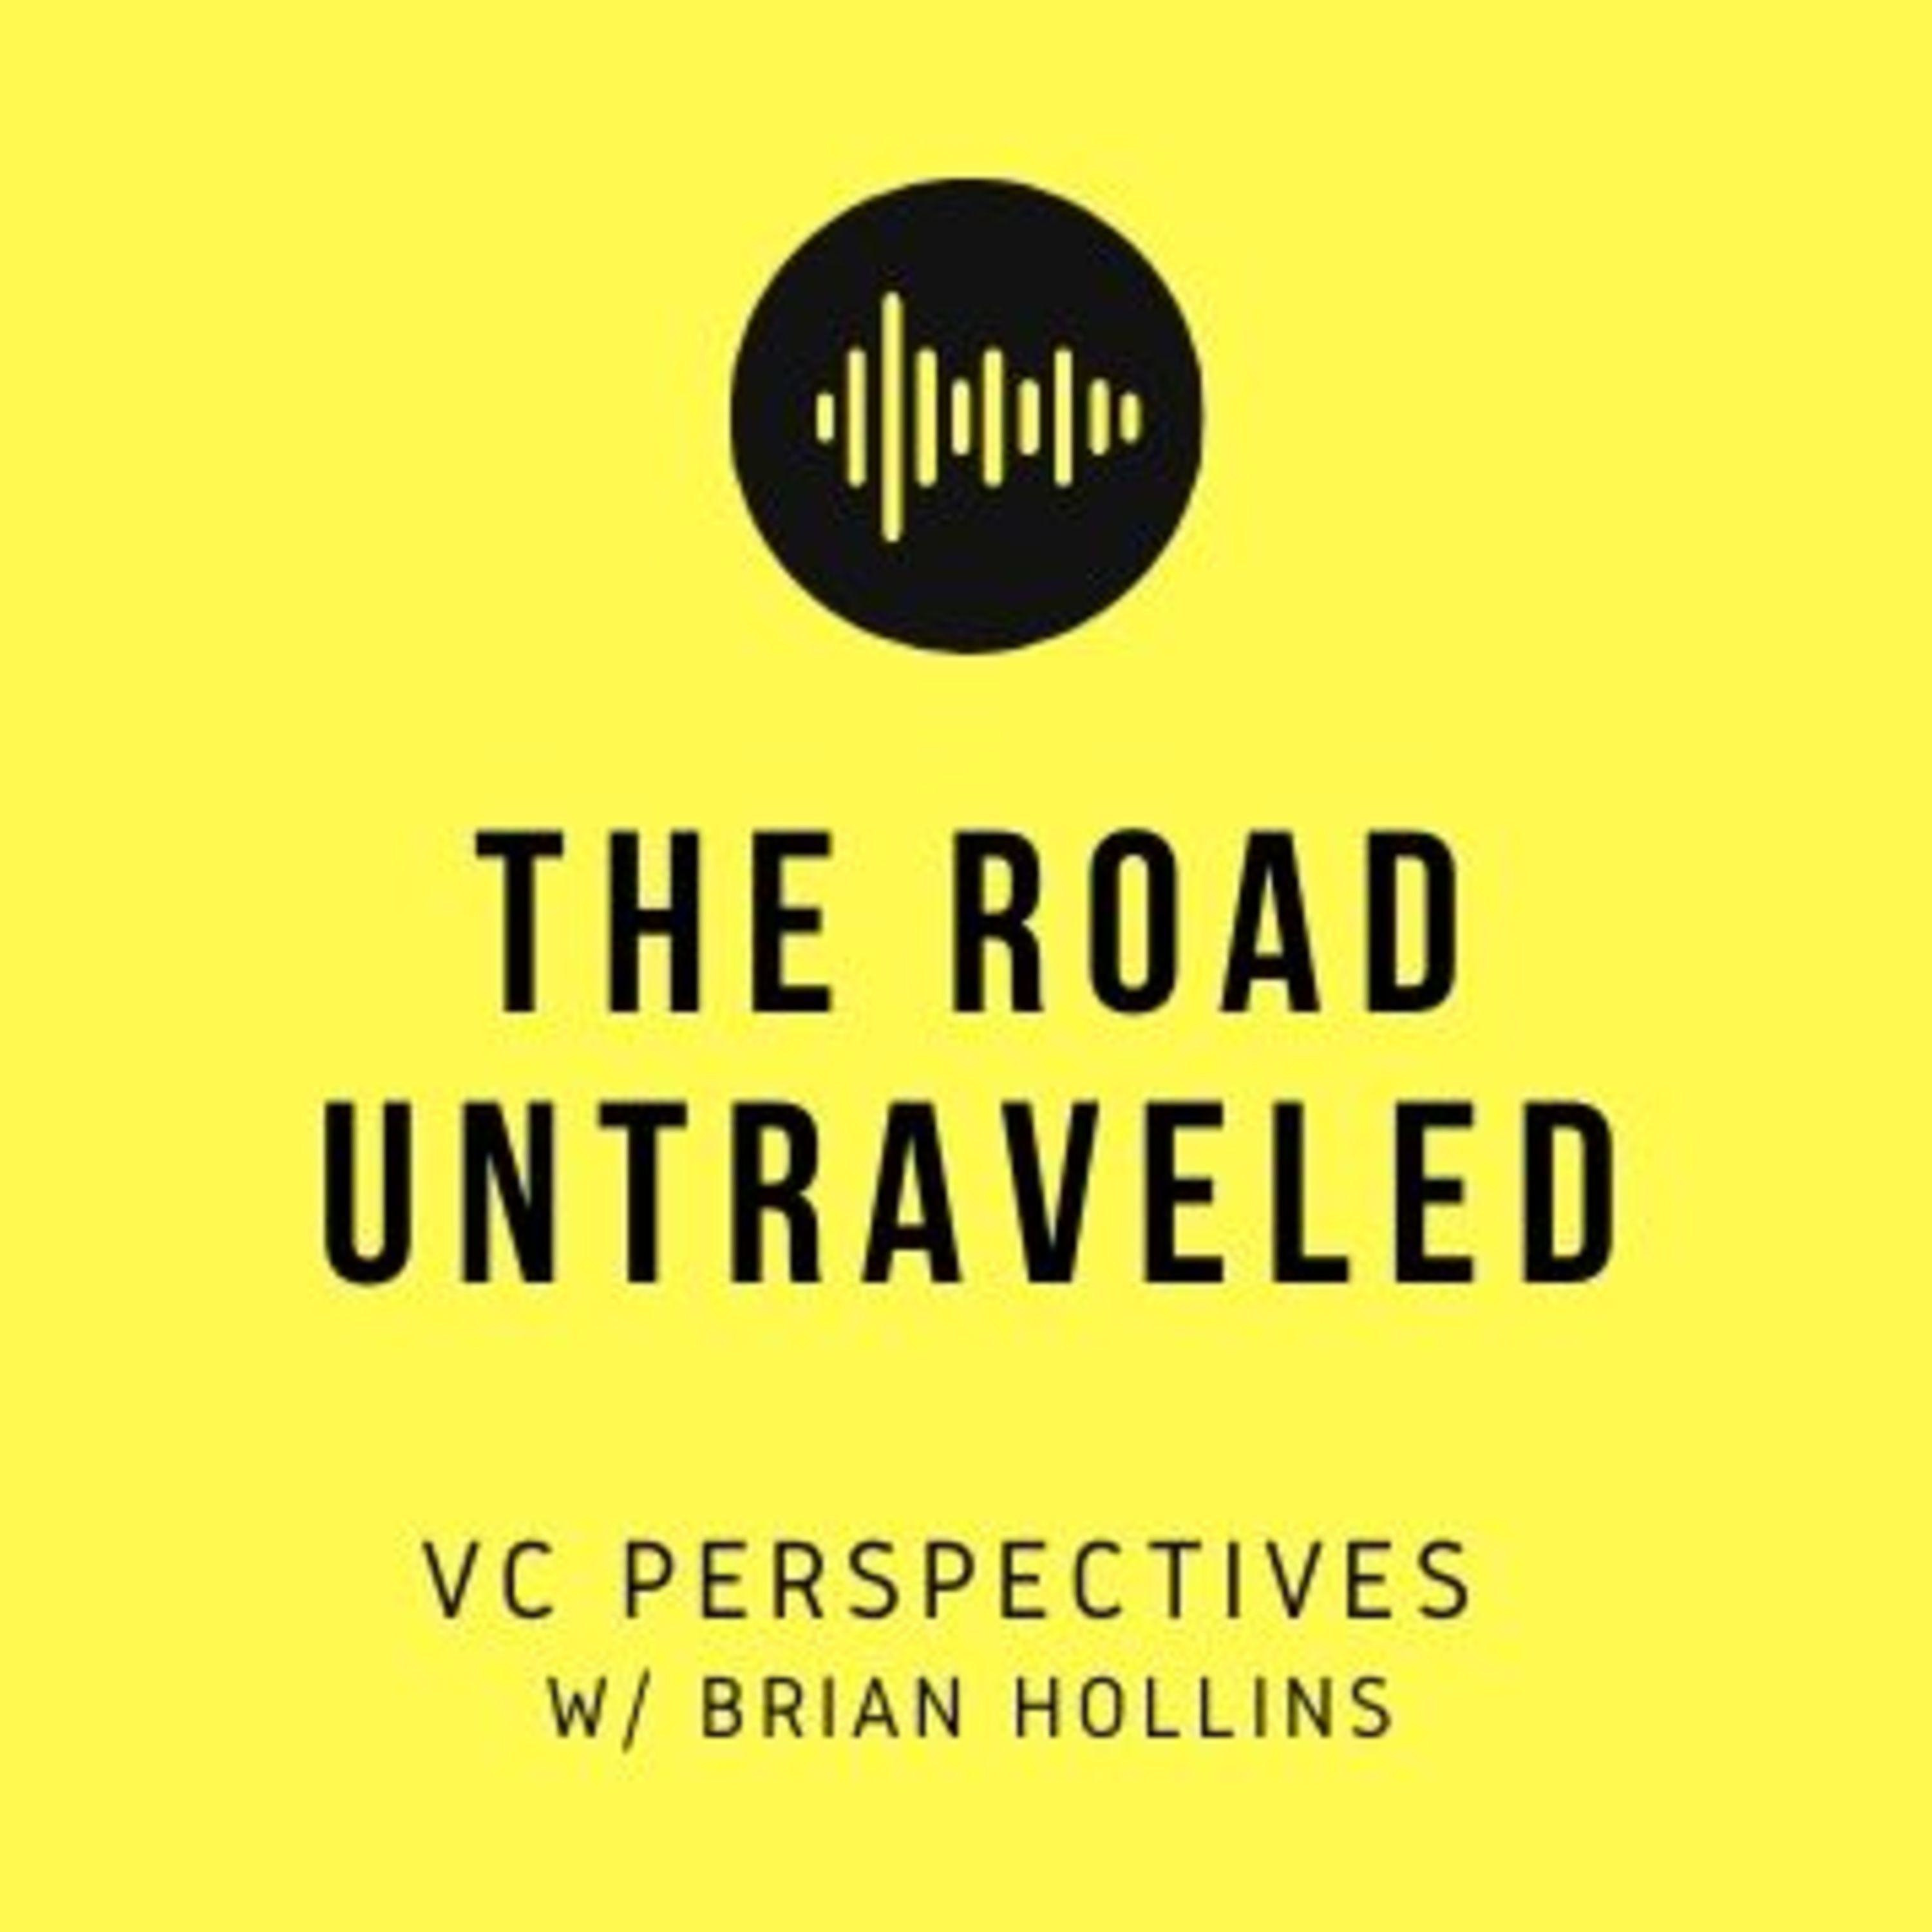 The Road Untraveled: VC Perspectives with Brian Hollins